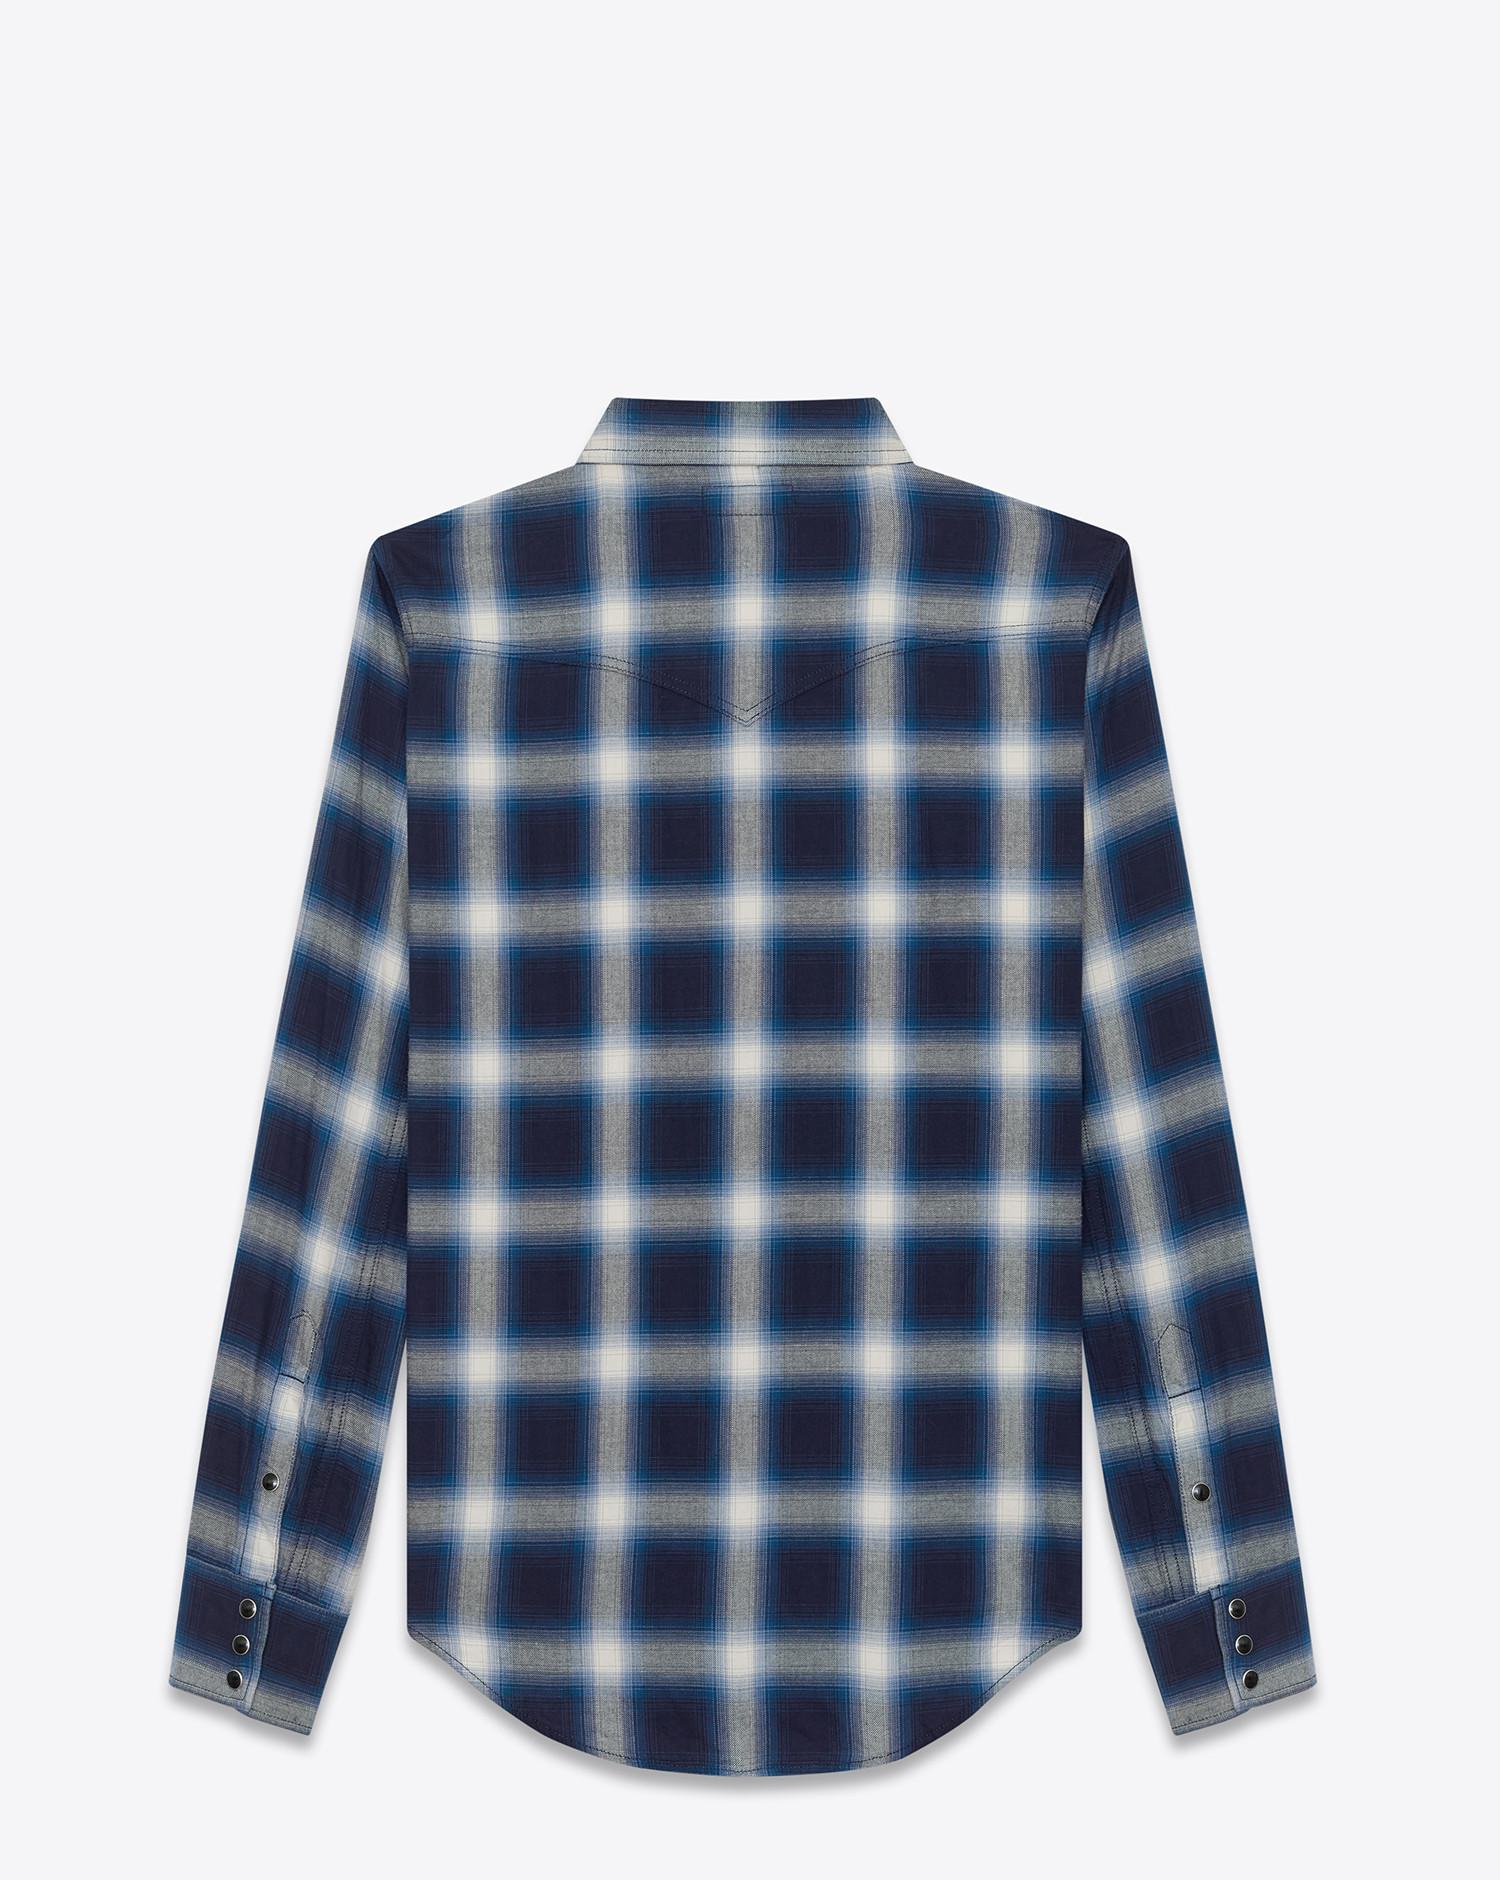 lyst saint laurent classic western shirt in blue and ivory plaid cotton in blue for men. Black Bedroom Furniture Sets. Home Design Ideas